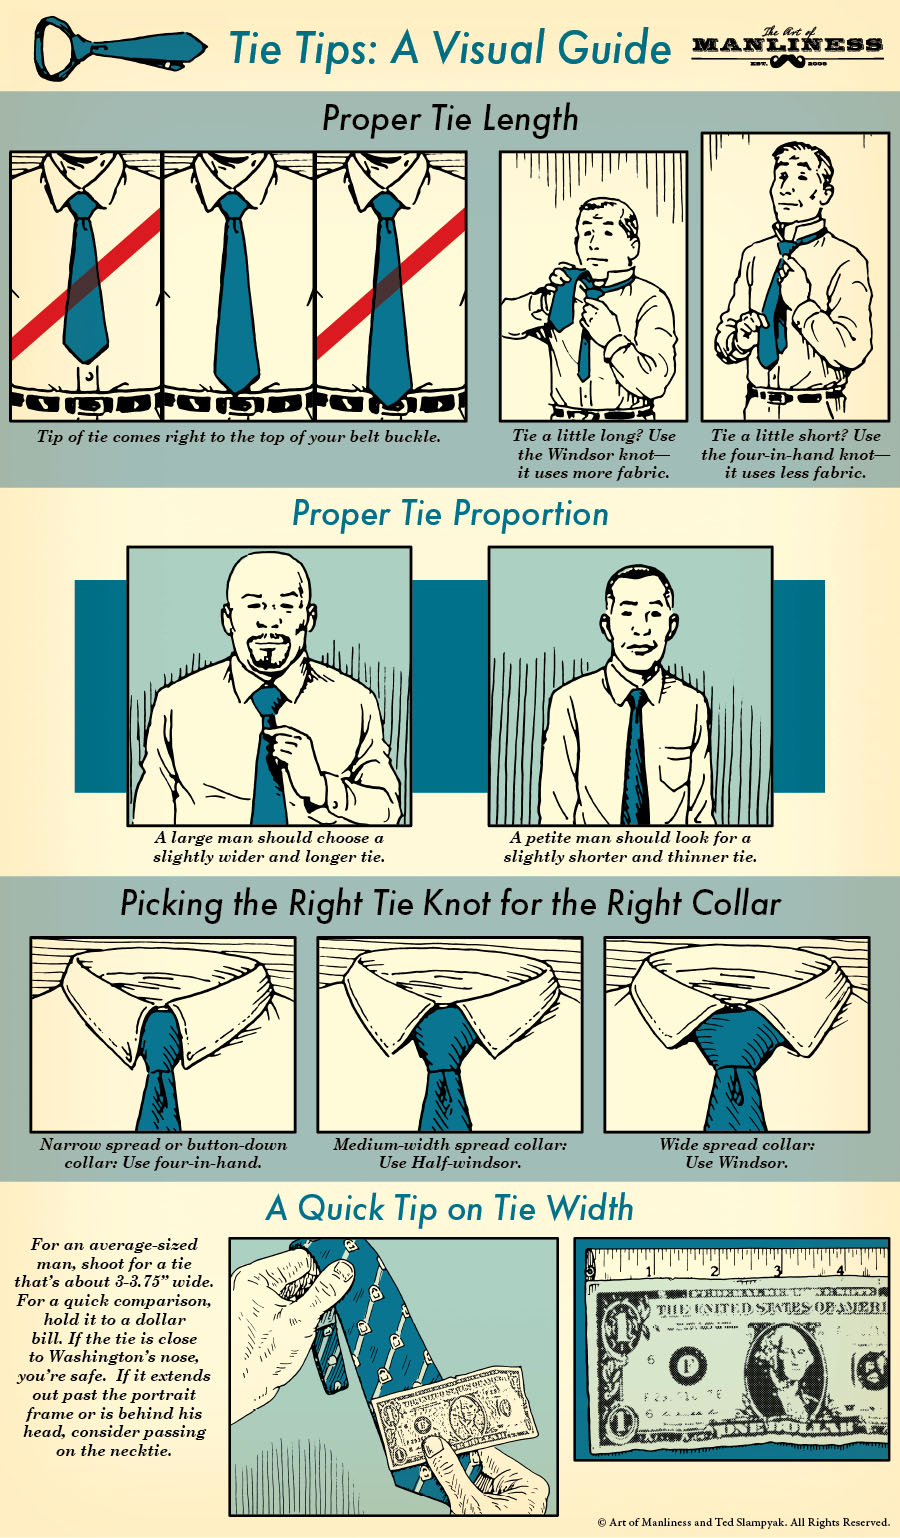 Tie Tips: A Visual Guide  Proper Tie Length. Tip of tie comes right to the top of your belt buckle. Tie a little long? Use the Windsor Knot – it uses more fabric. Tie a little short? Use the four-in-hand knot – it uses less fabric.  Proper Tie Proportion. A large man should choose a slightly wider and longer tie. A petite man should look for a slightly shorter and thinner tie.  Picking the Right Tie Know for the Right Collar. Narrow spread or button collar – use four-in-hand. Medium-width spread collar – use Hald-windsor. Wide spread collar – use Windsor.  A Quick Tip on Tie Width.